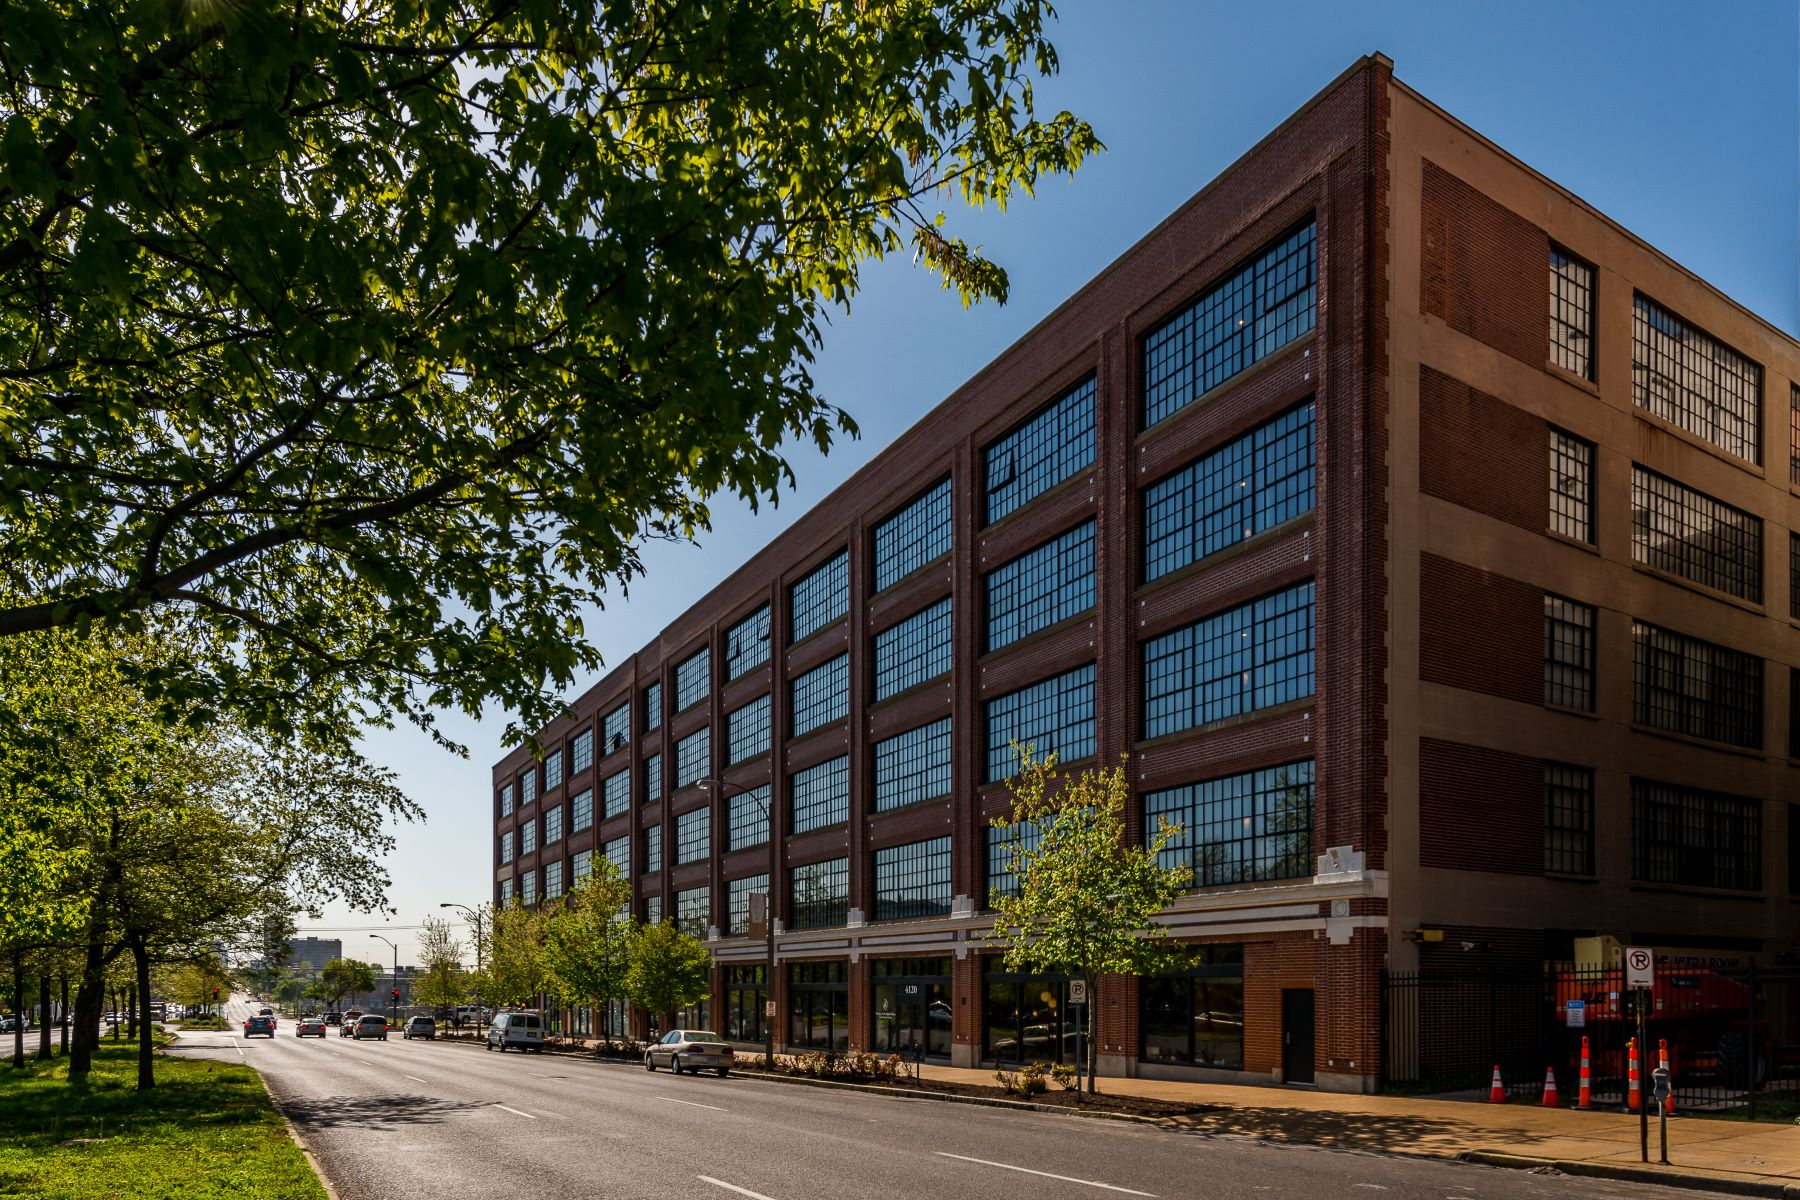 Property for Sale at West End Lofts #305 4100 Forest Park Ave #305 St. Louis, Missouri 63108 United States